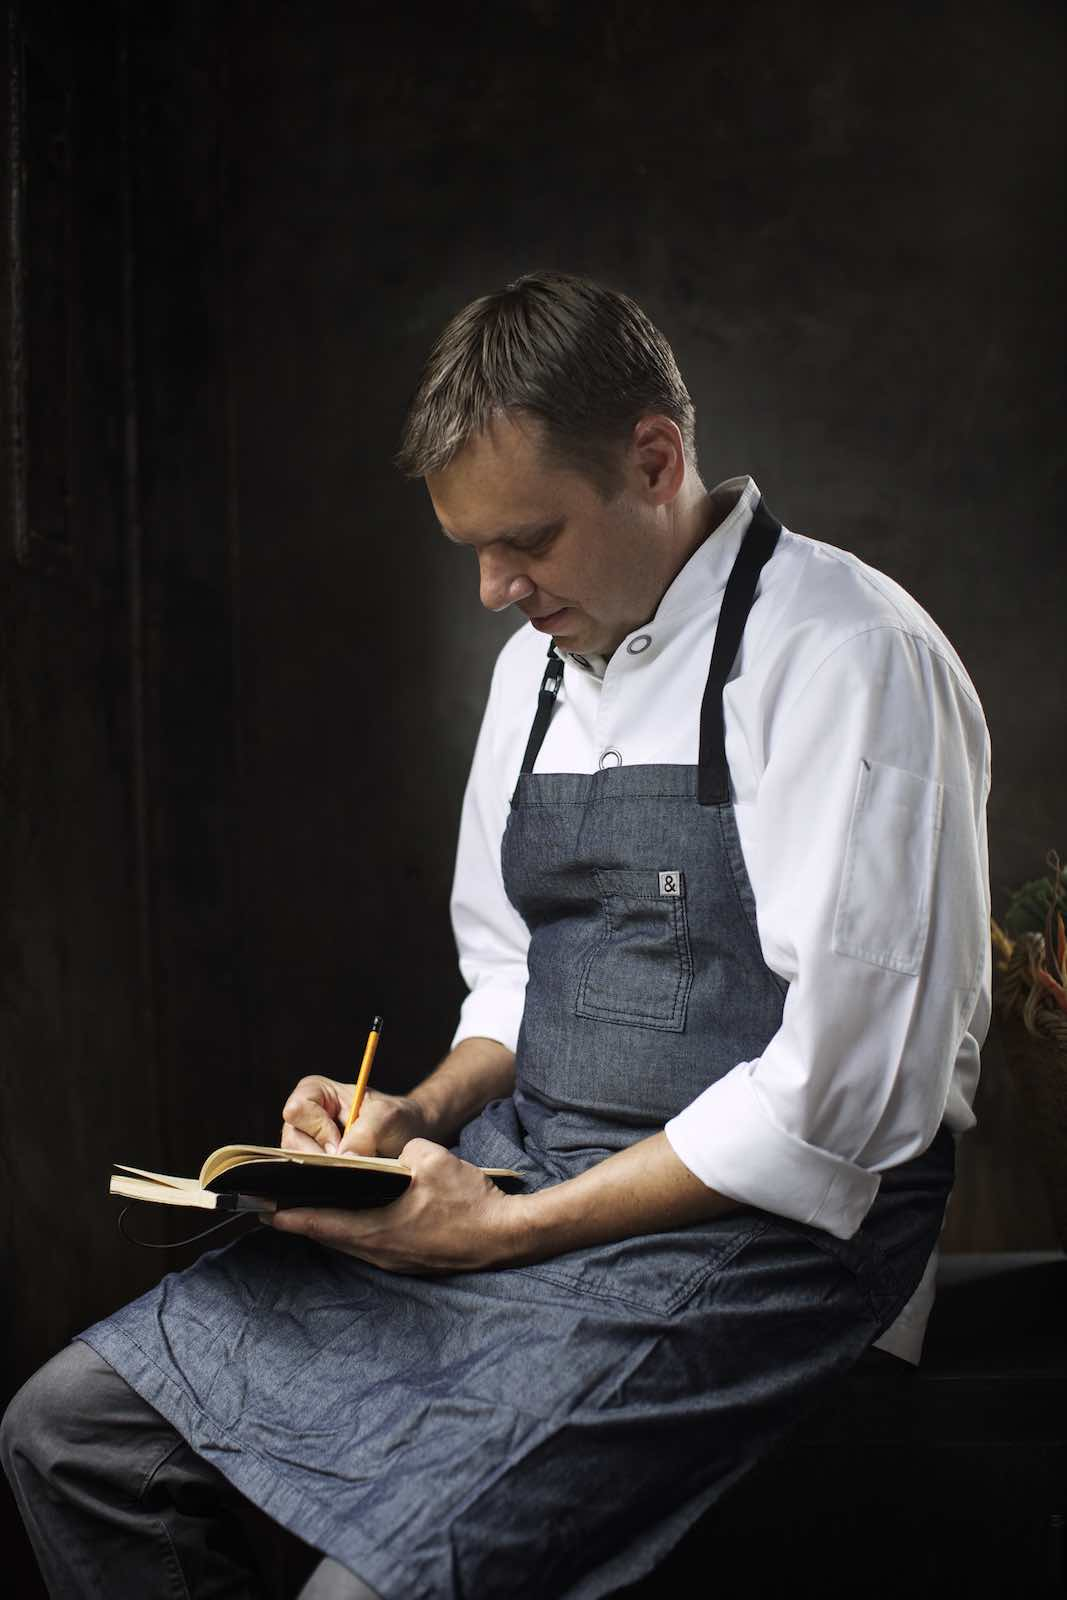 Jody Horton Photography - Chef in uniform recording in a notebook.